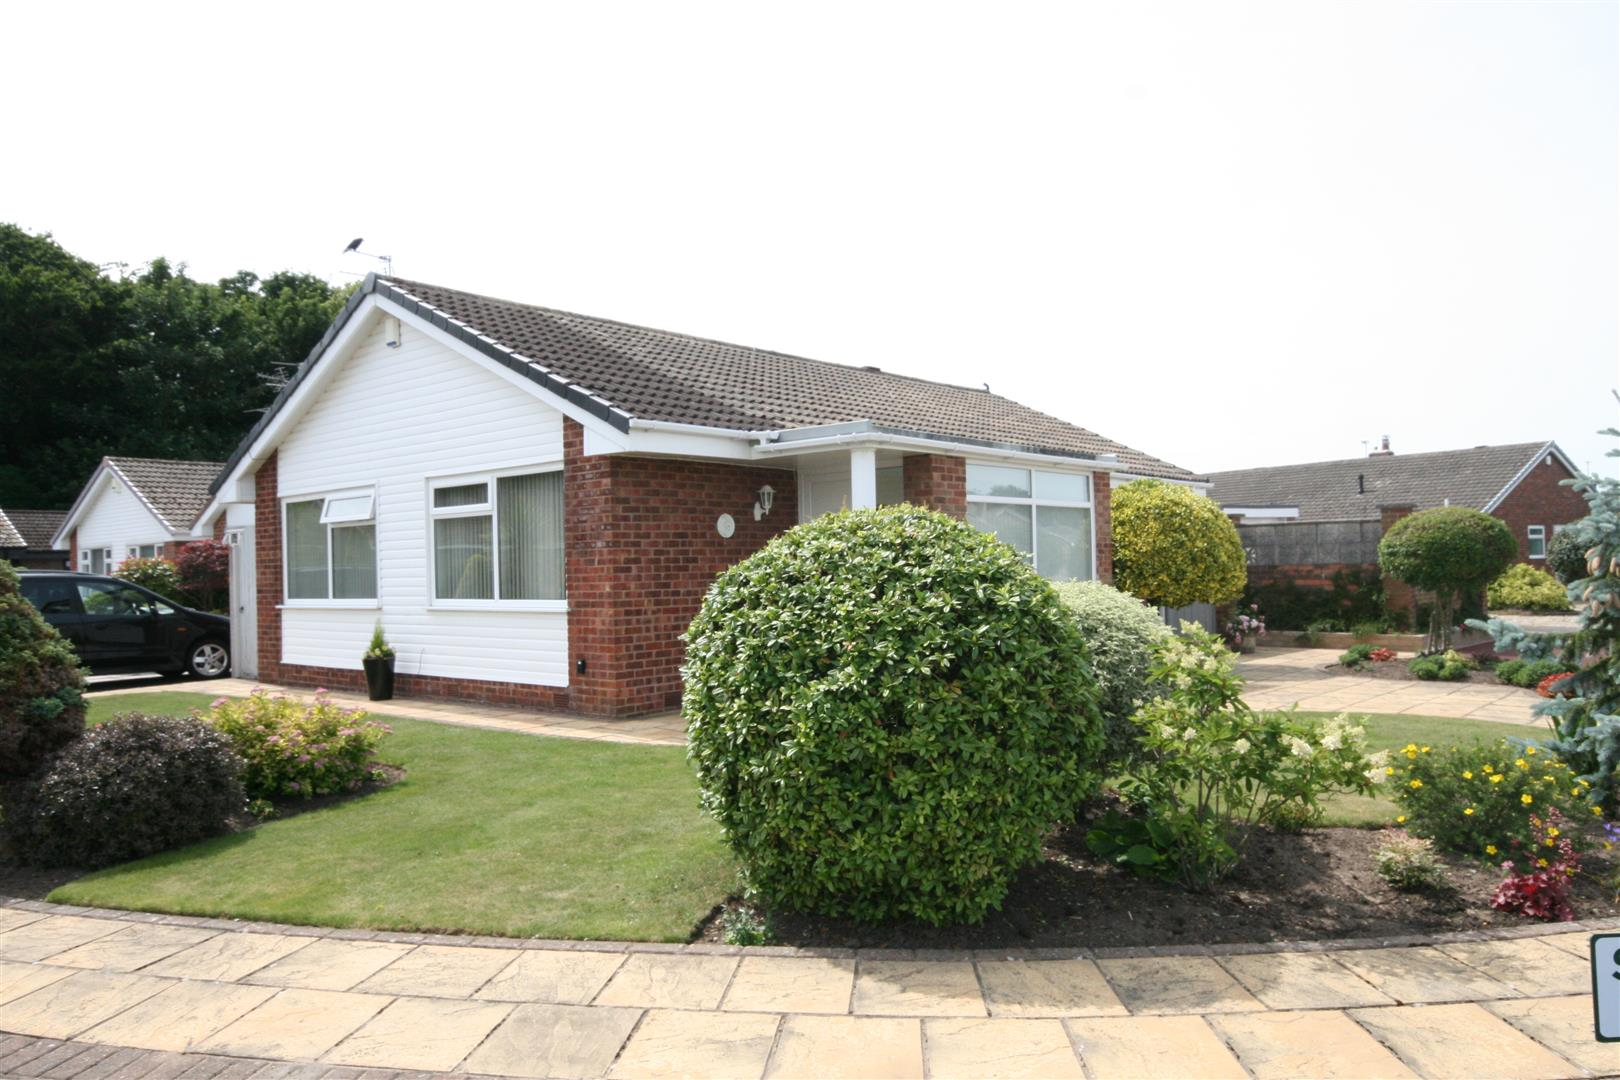 2 Bedrooms Property for sale in Broadwood Way, Lytham St. Annes